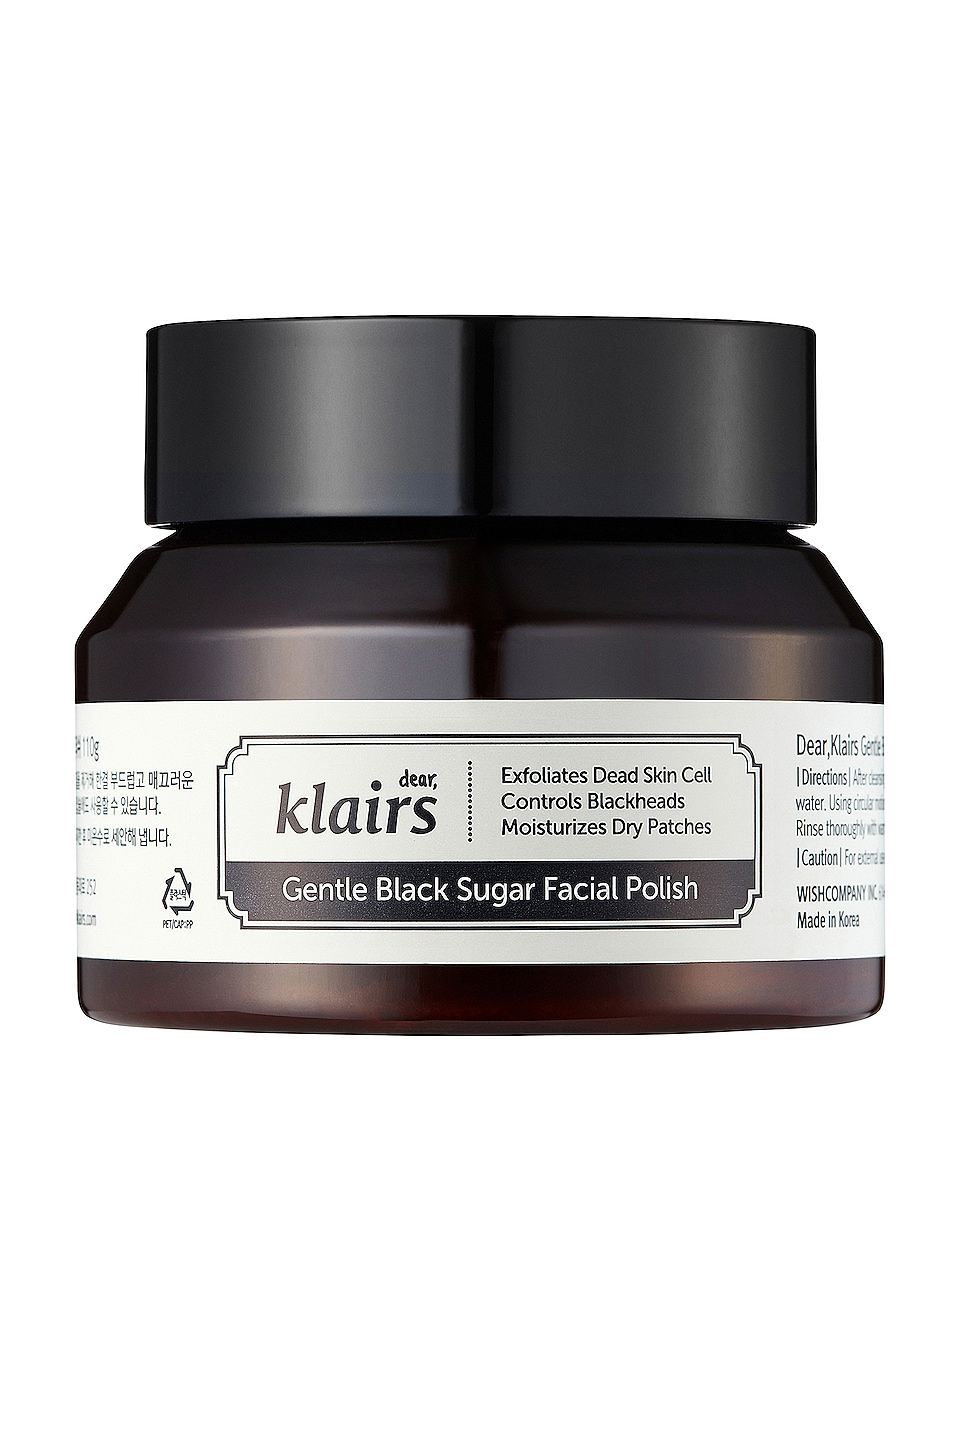 Klairs EXFOLIANT GENTLE BLACK SUGAR FACIAL POLISH